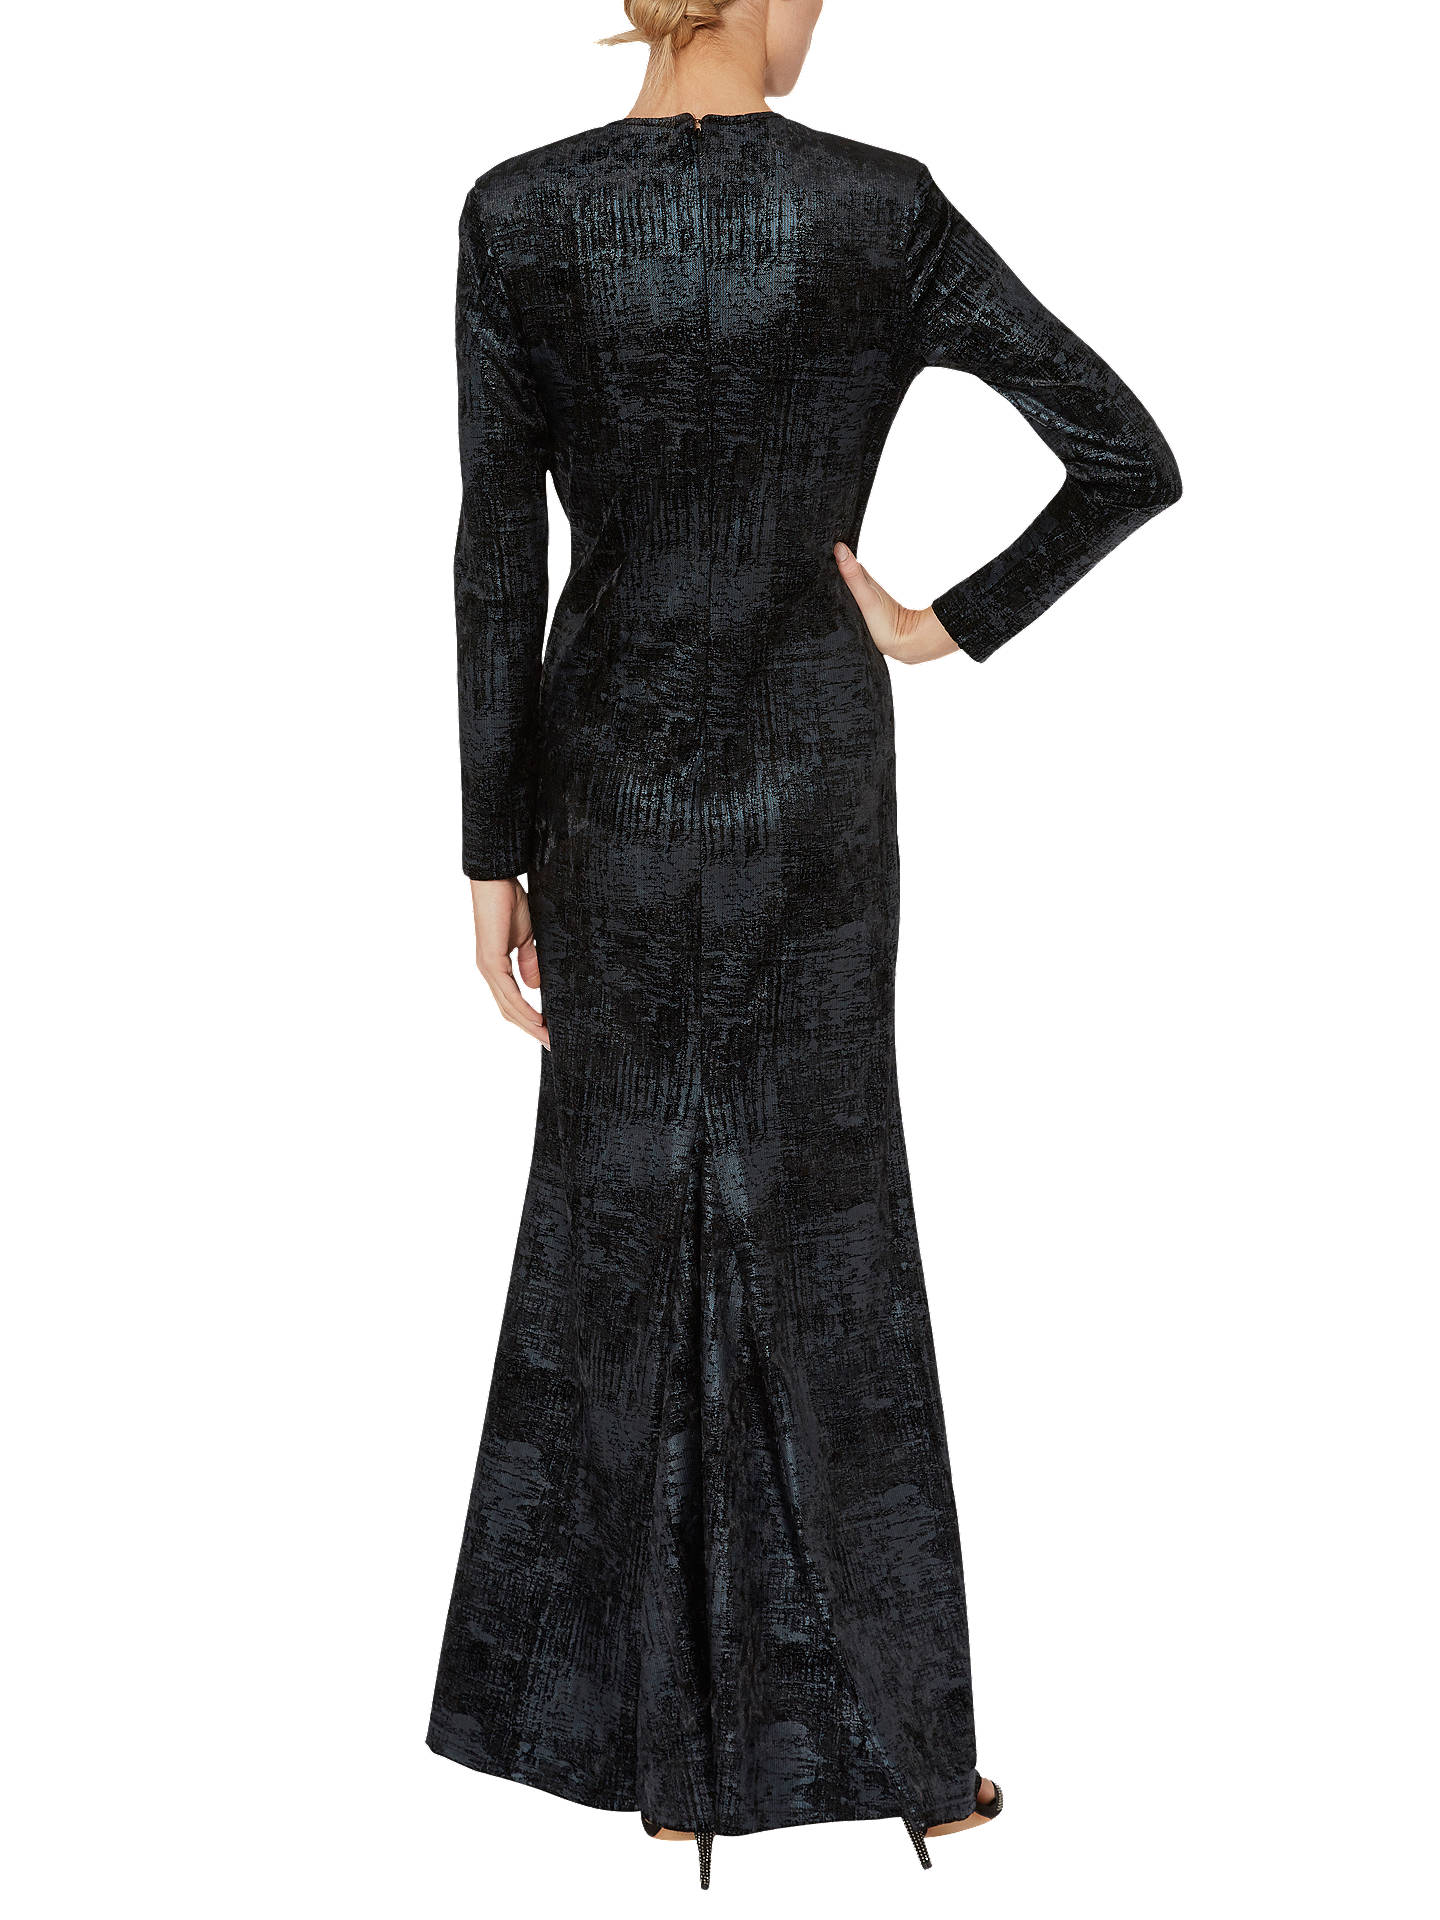 BuyGina Bacconi Lovetta Check Maxi Dress, Black, 18 Online at johnlewis.com